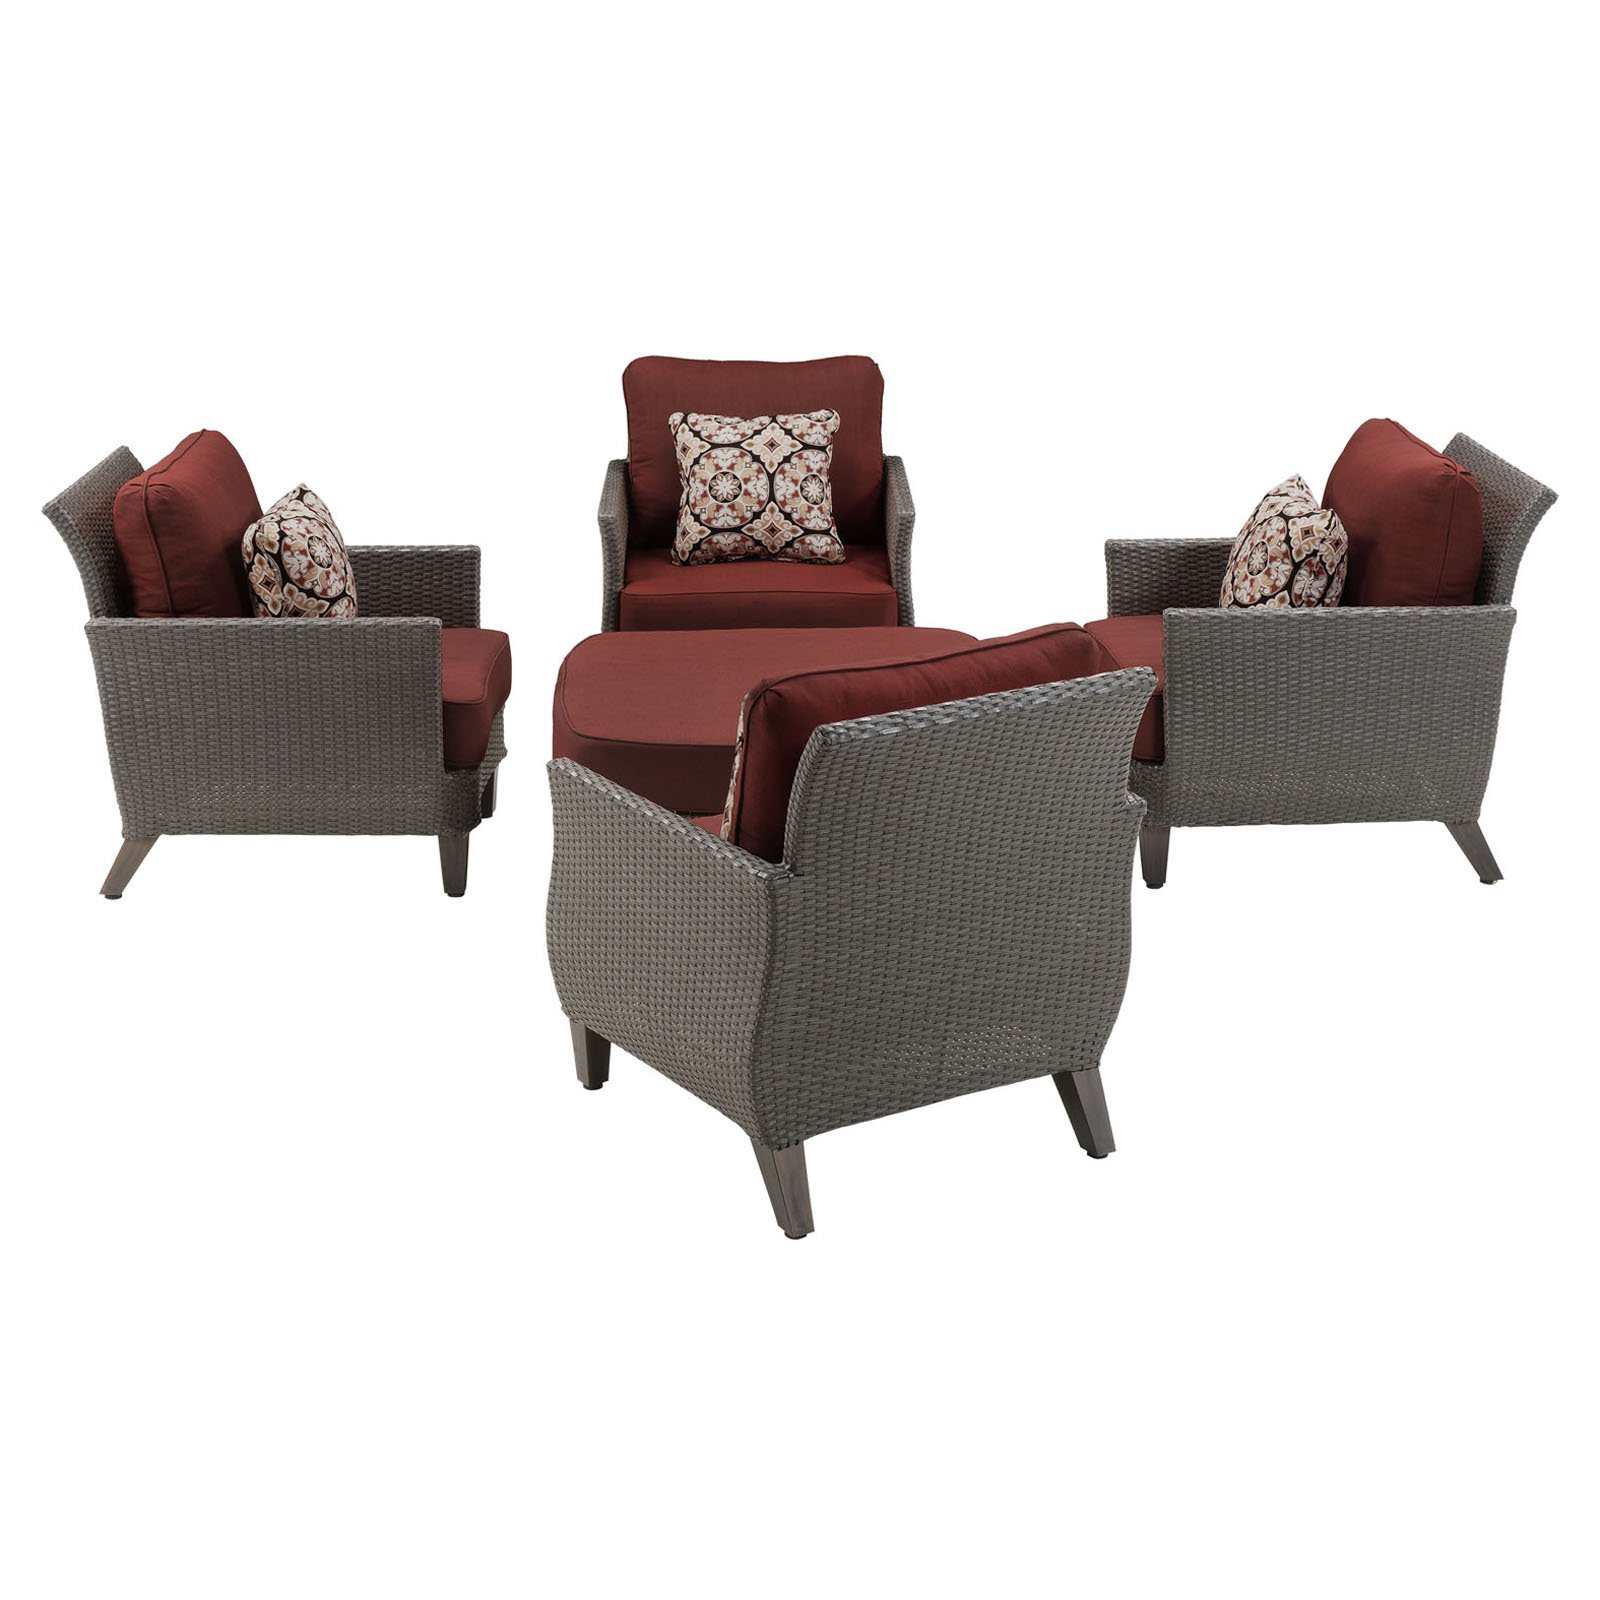 Hanover Savannah 5 Piece Wicker Patio Chat Set